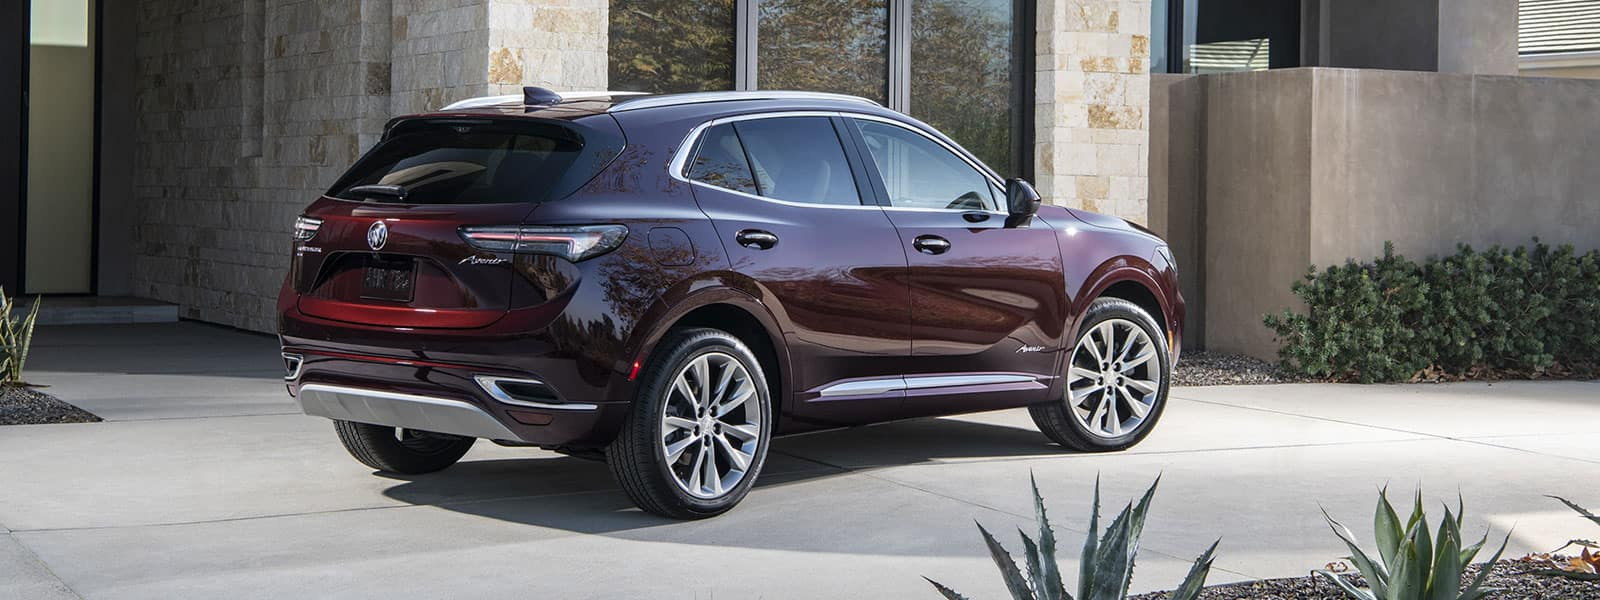 Lease or finance new 2022 Buick Envision in Weyburn SK